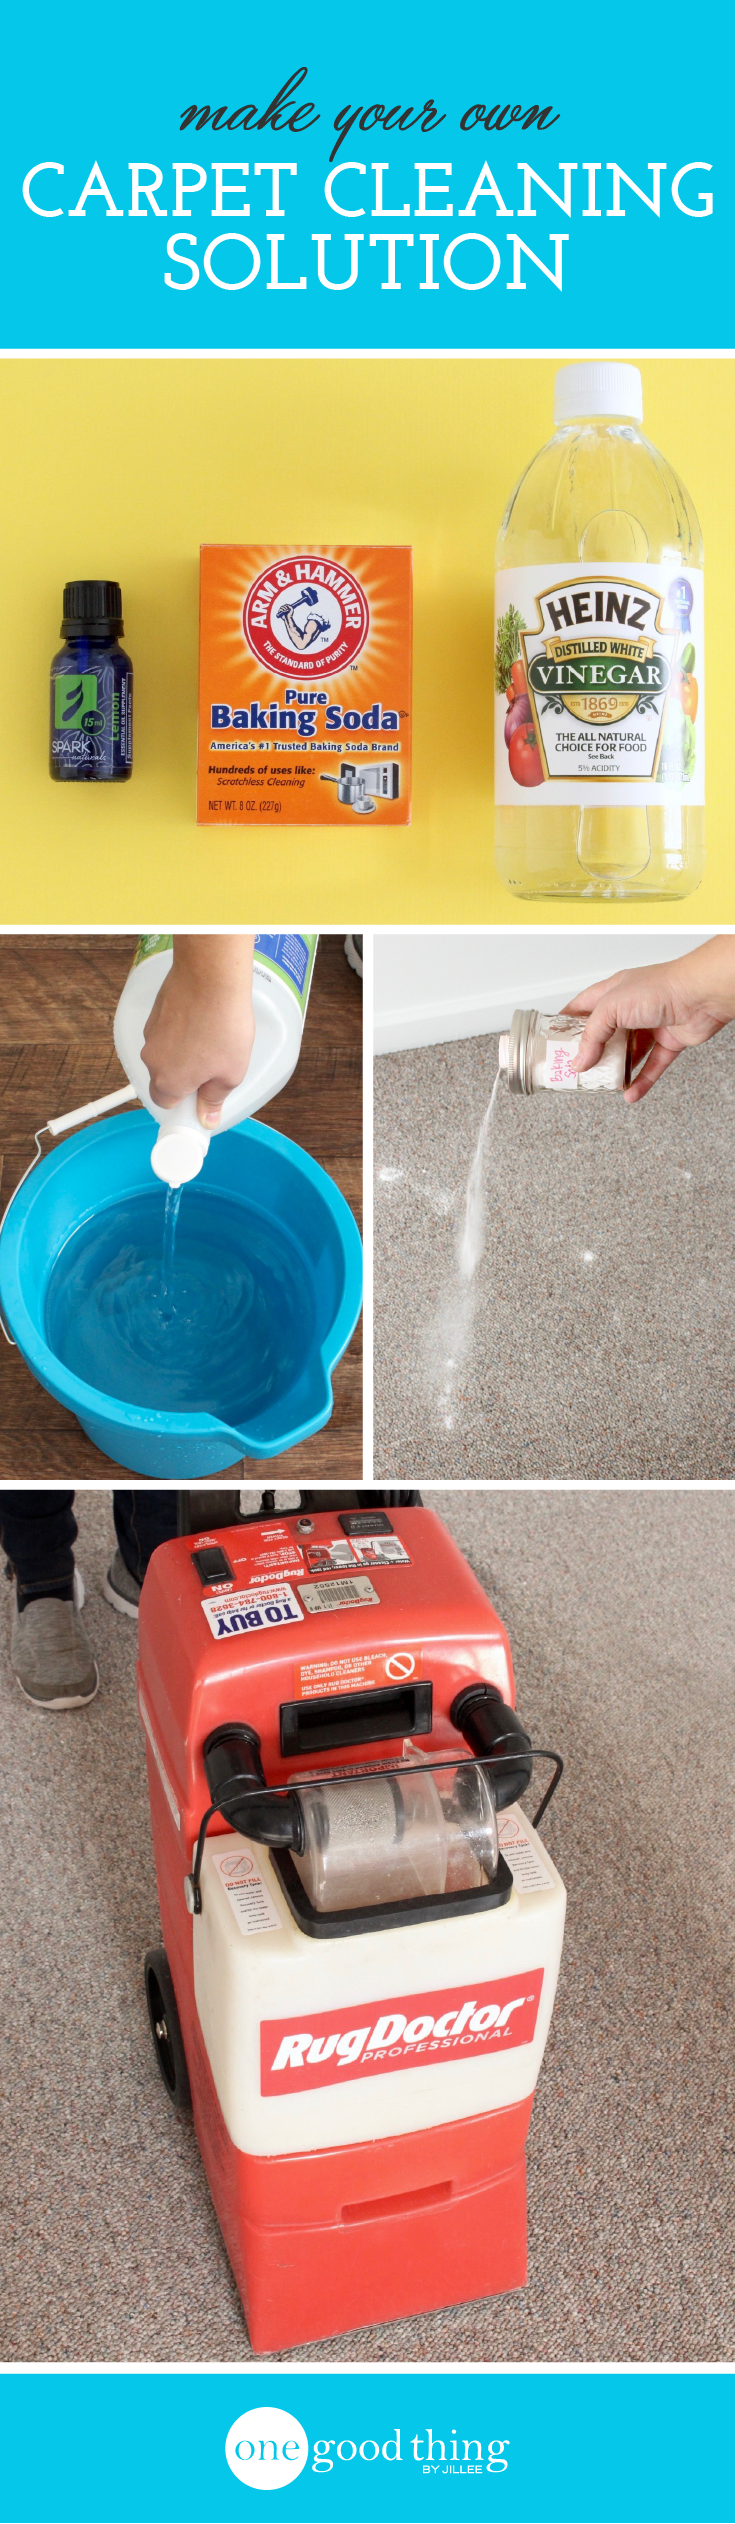 How to make a natural carpet cleaning solution carpet cleaning whether you own or rent your carpet cleaning machine this all natural homemade carpet cleaning solution will ensure that your carpets get a deep clean solutioingenieria Gallery